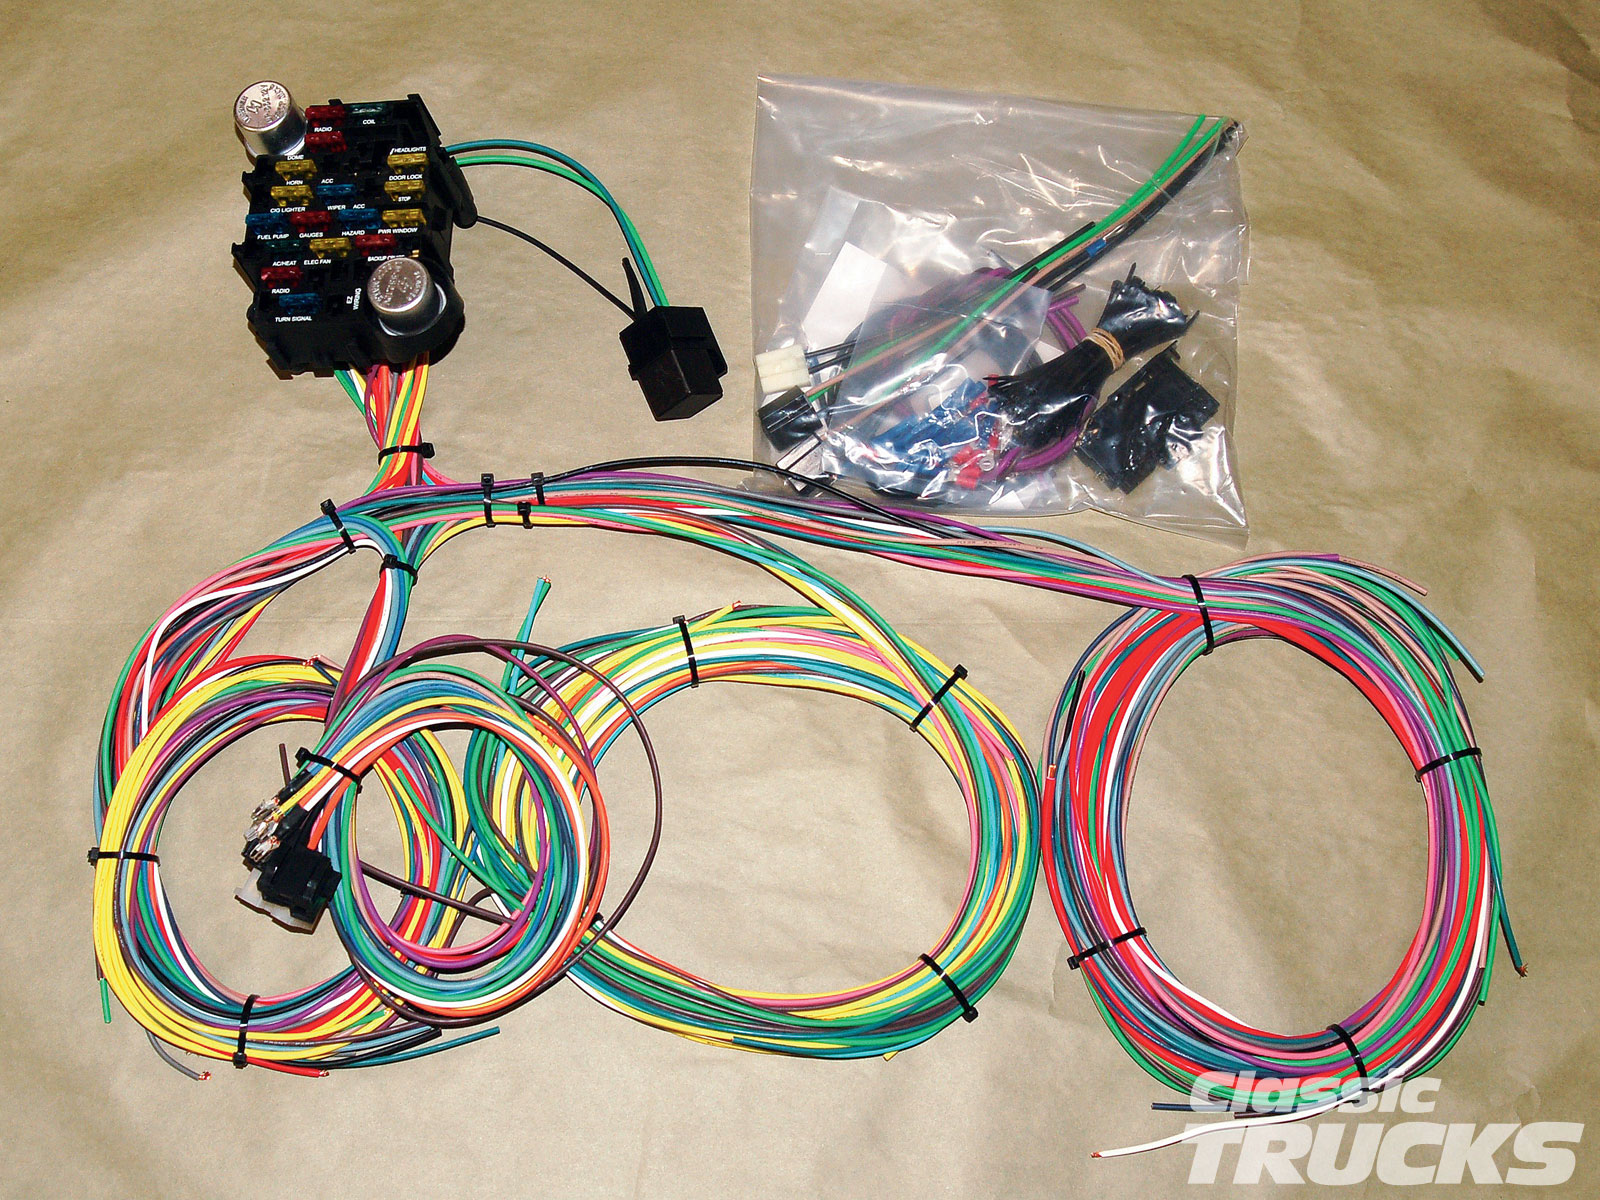 1010clt 02 o aftermarket wiring harness install kit?resize\\\=665%2C499 painless wiring harness australia tamahuproject org universal wiring harness australia at couponss.co